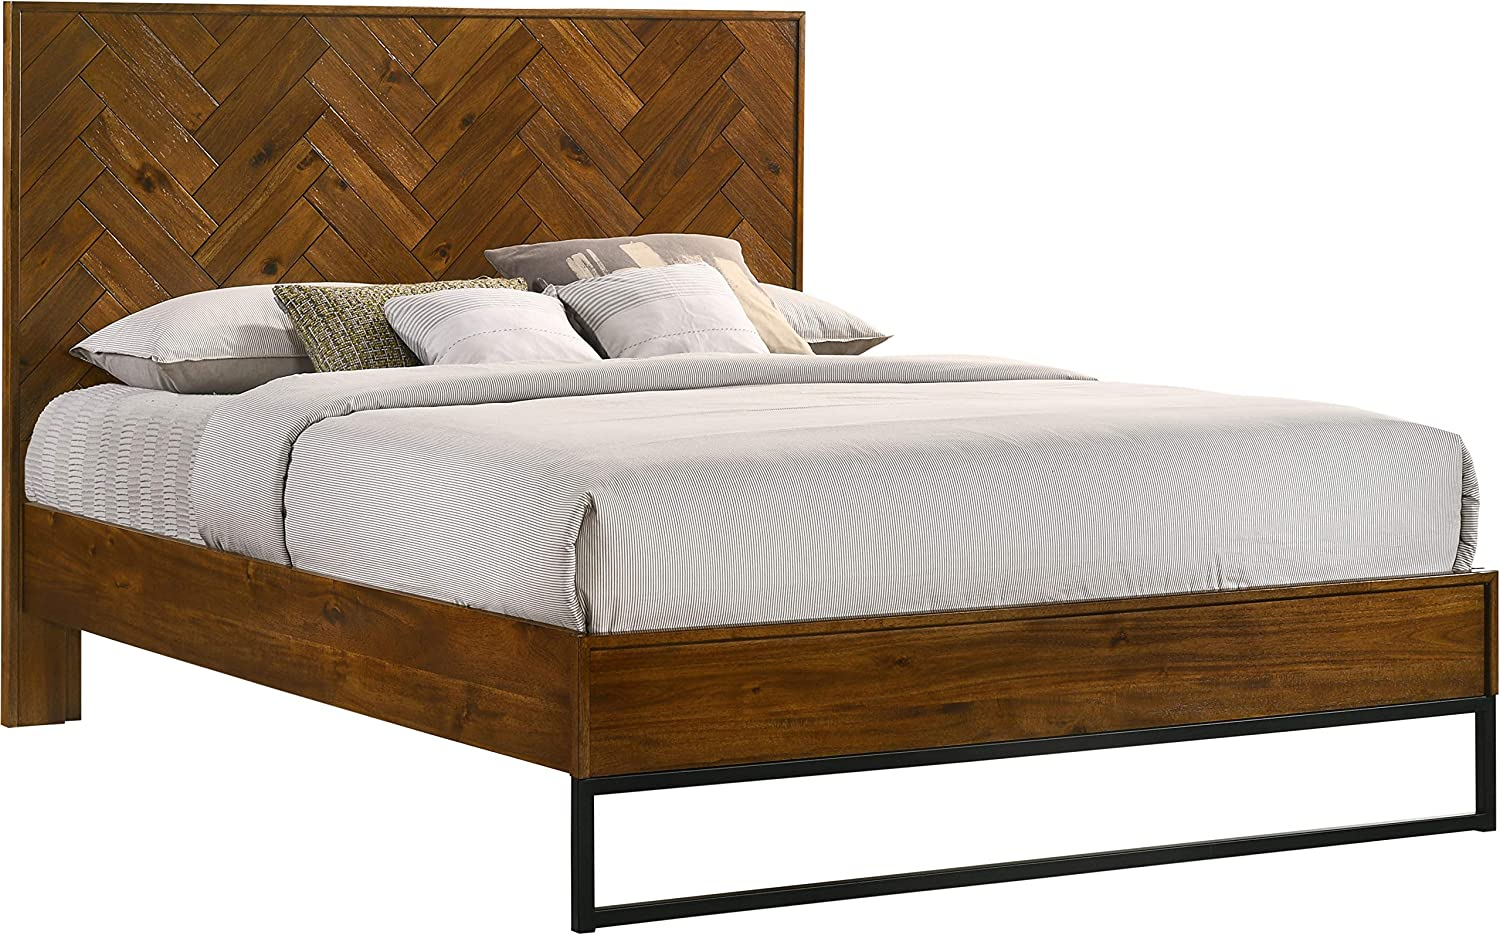 Meridian Furniture Reed Collection Mid Century Modern Bed with Matte Black Base, Queen, Brown Antique Coffee Wood Finish